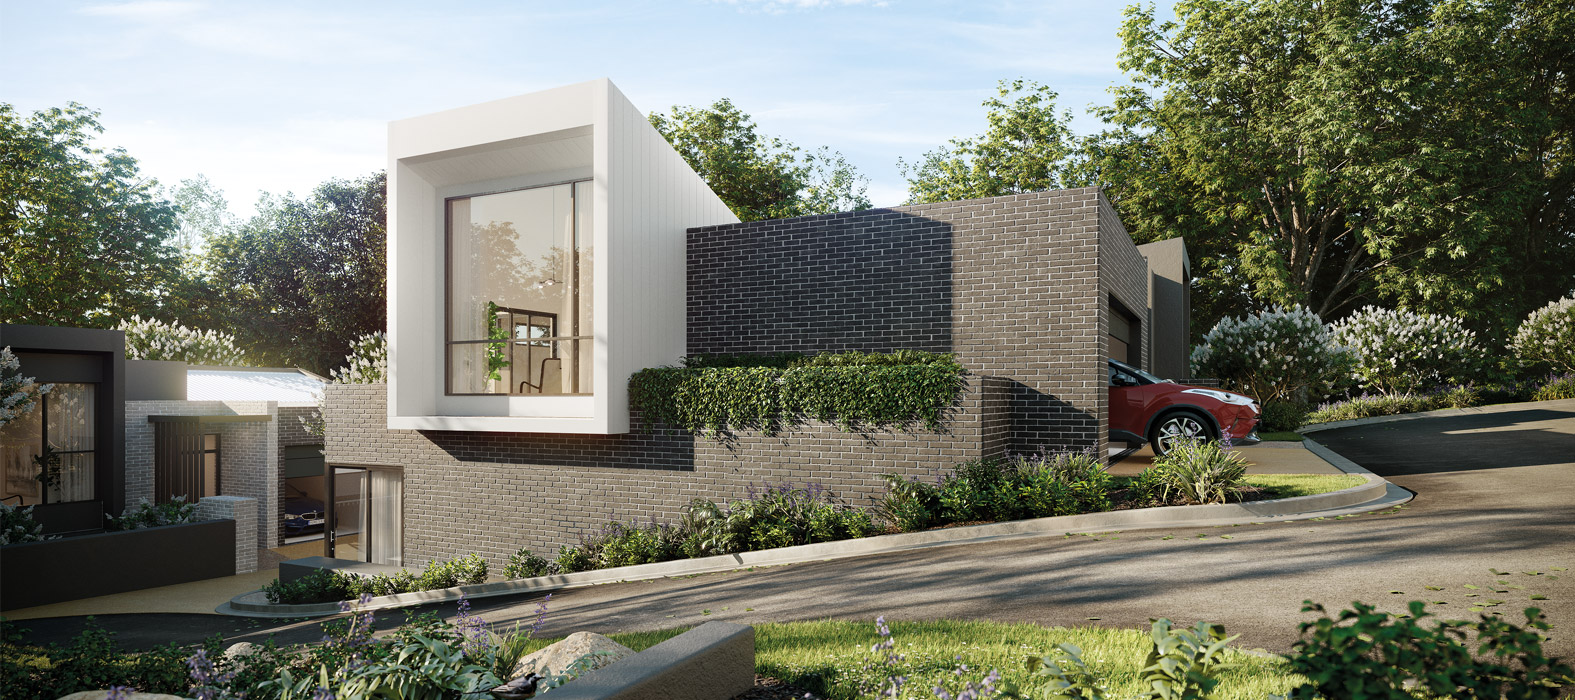 Baptcare, The Orchards - artist impression of villa from the side